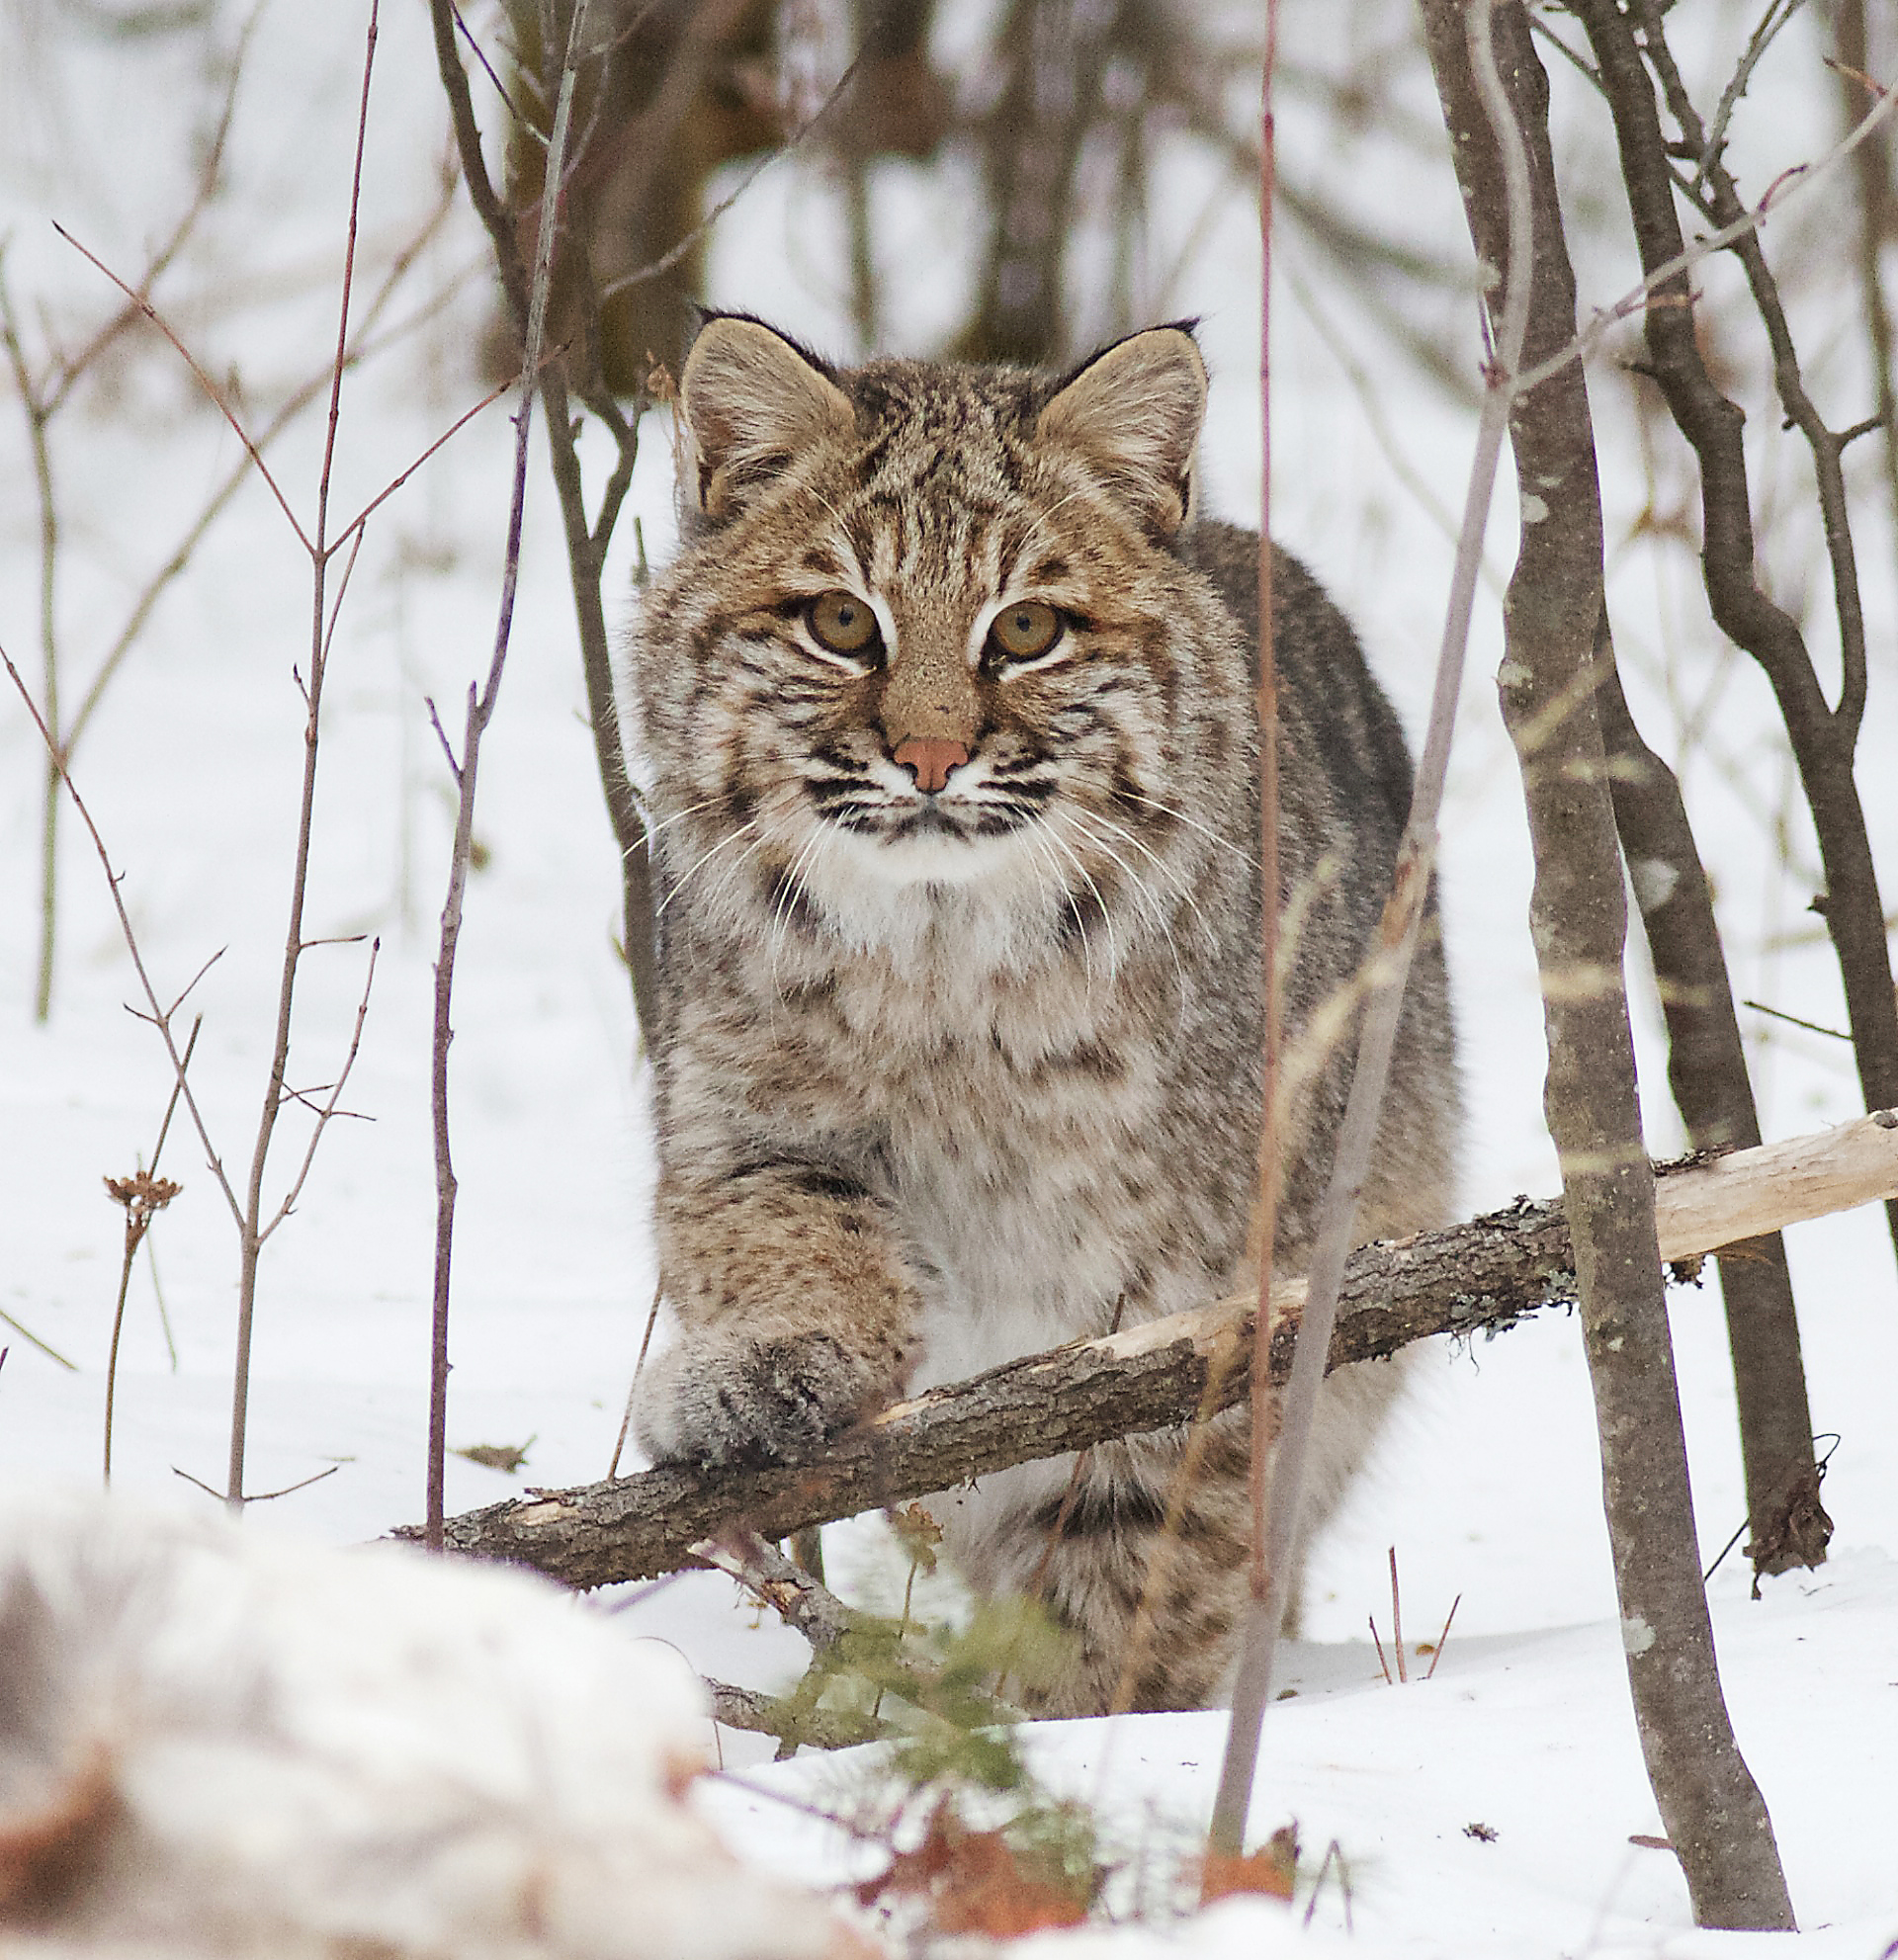 Show Me A Picture Of A Bobcat >> Show Me A Picture Of A Bobcat | New Car Release Information